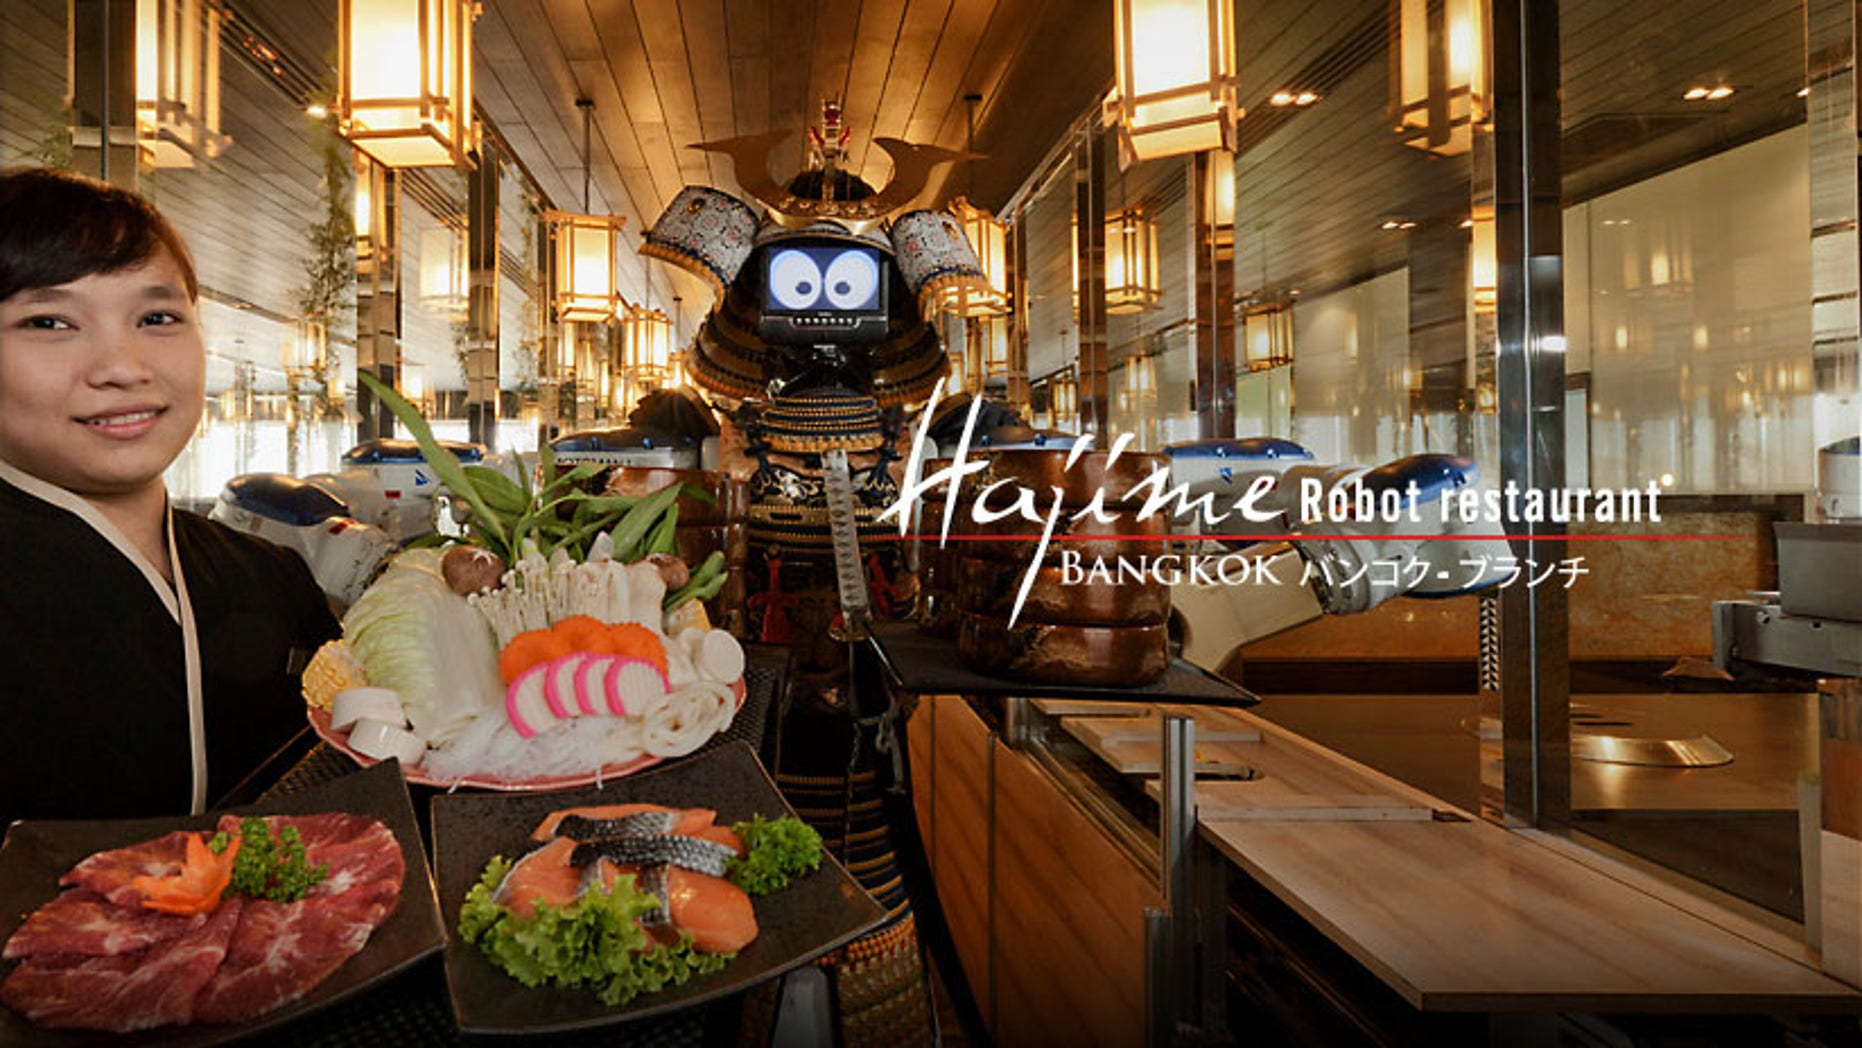 Hajime Robot Restaurant in Bangkok employs robots as their waitstaff. Diners sit facing a glass enclosure where the robots move back and forth on a track and serve customers through windows.